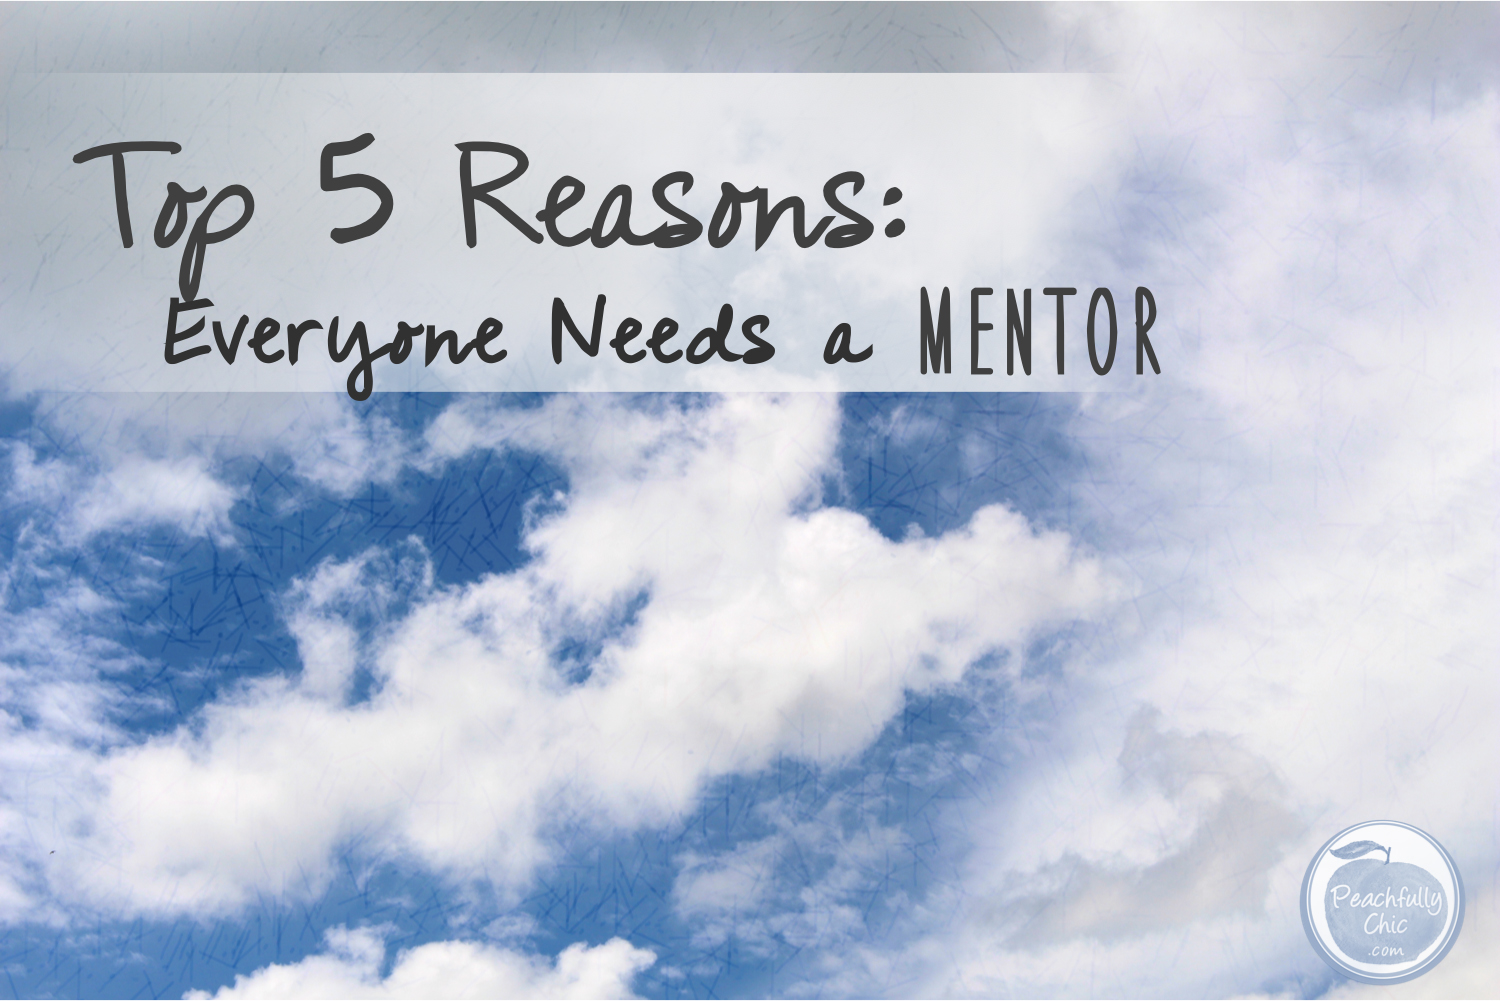 top-5-reasons-everyone-needs-a-mentor